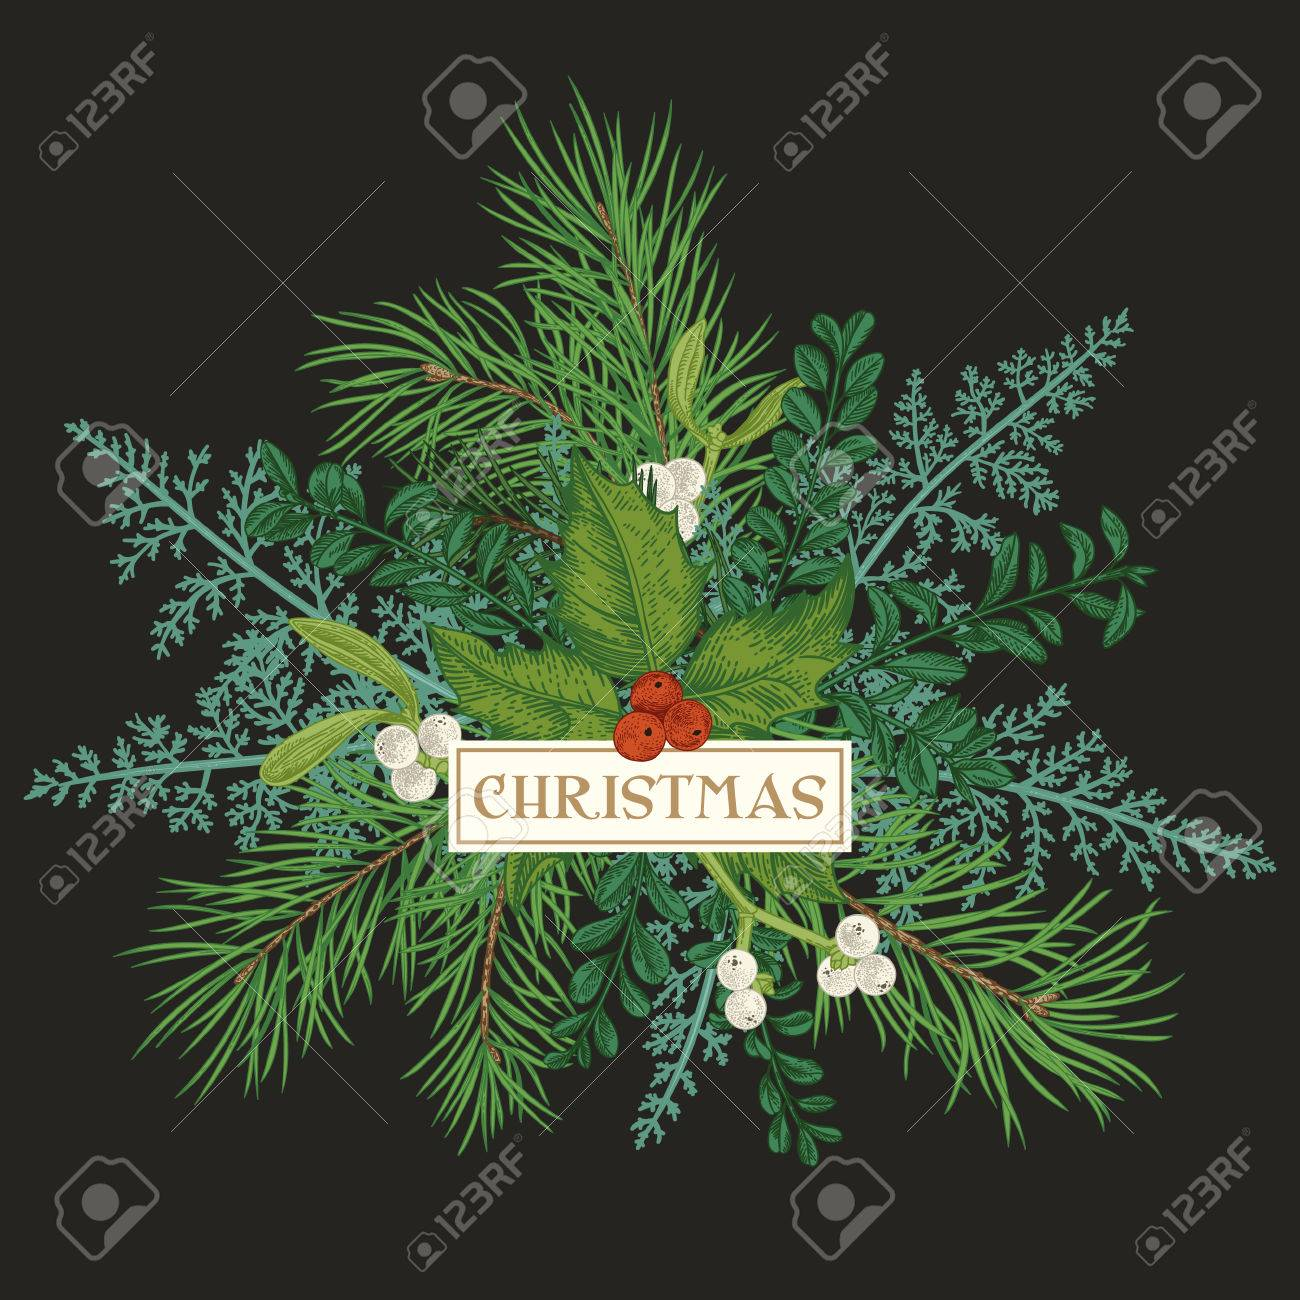 Greeting Card With Pine Branches Holly Berries And Leaves Fern